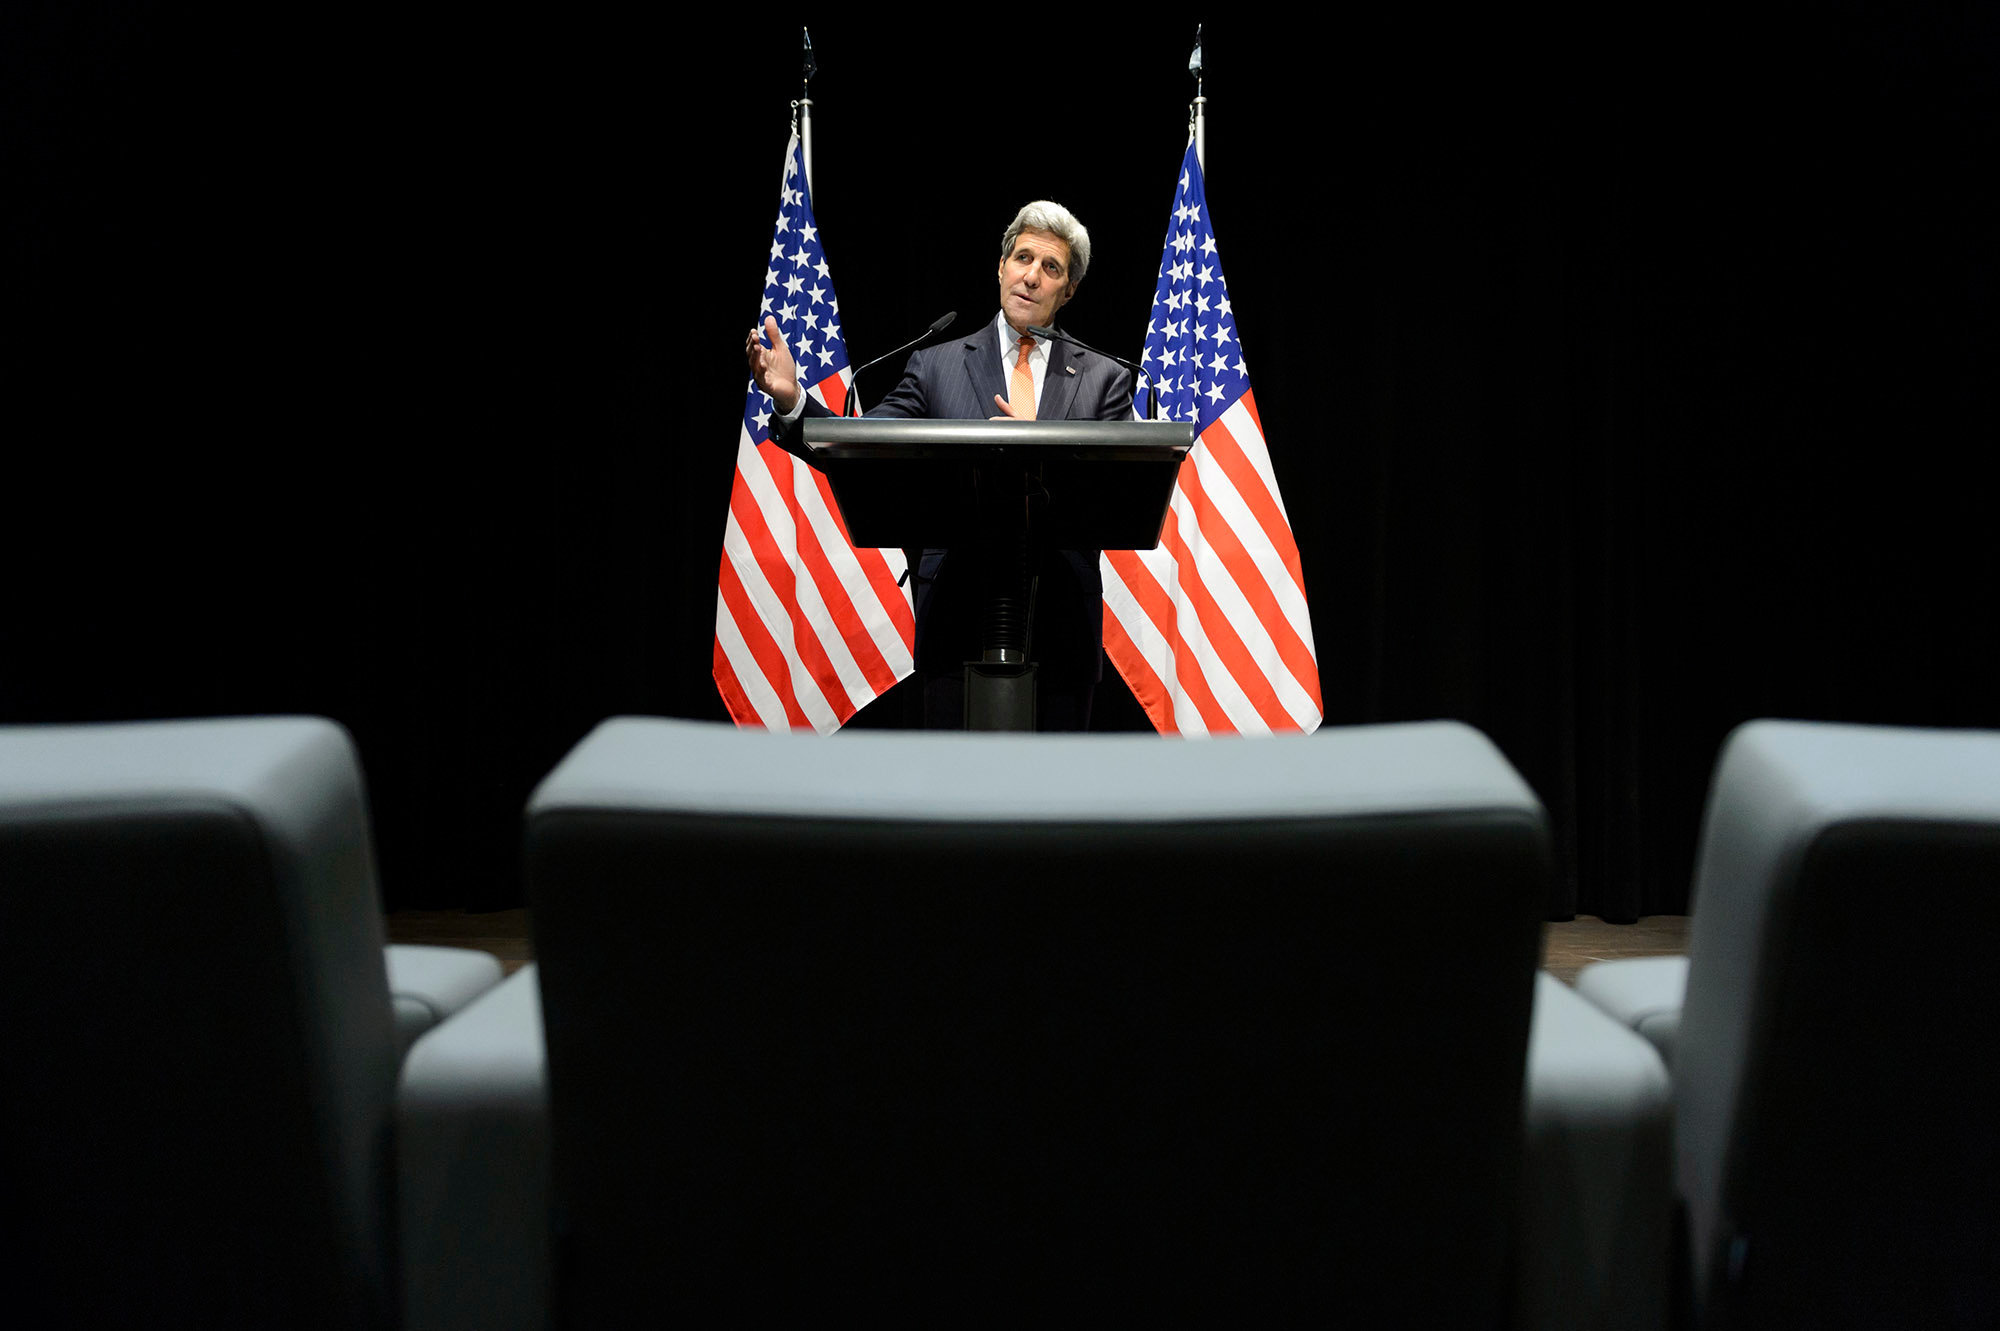 John Kerry - Iran Nuclear Talks - 2015